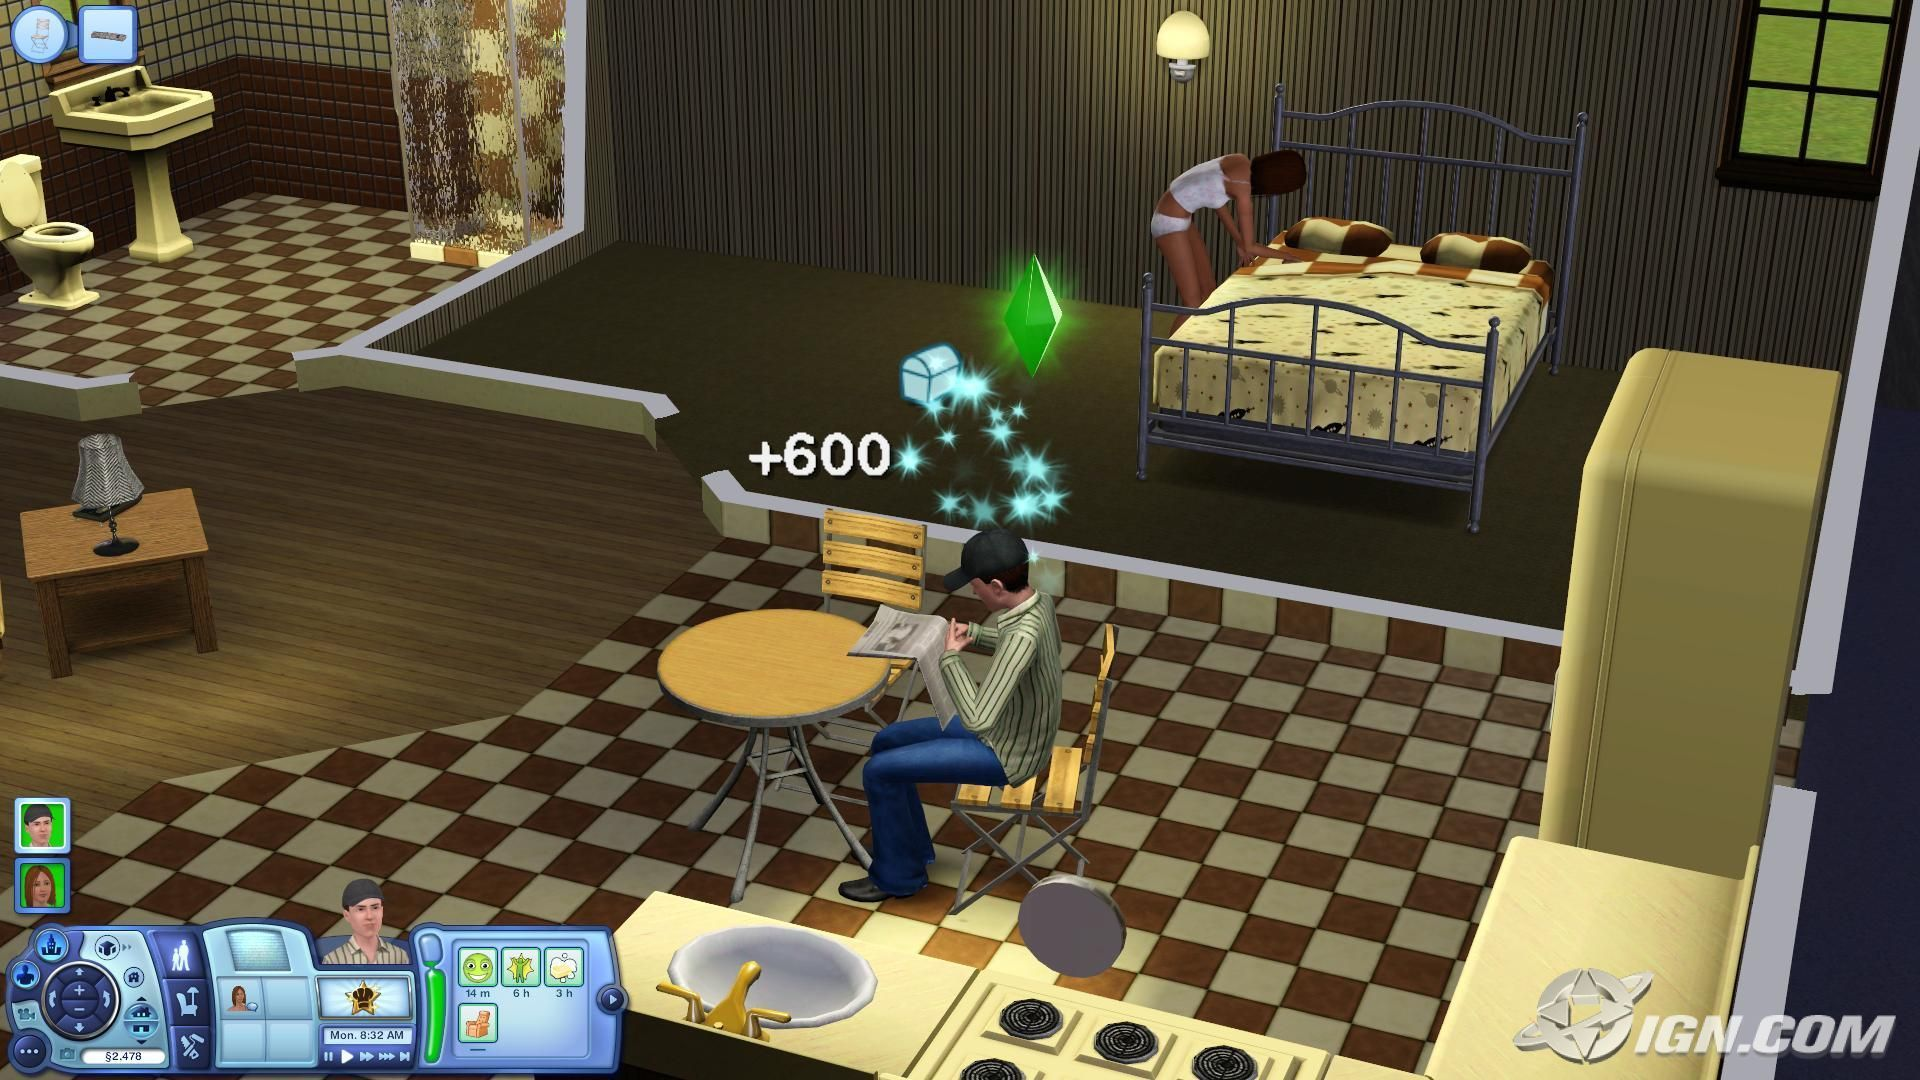 The Sims 3 Images Hd Wallpaper And Background Photos